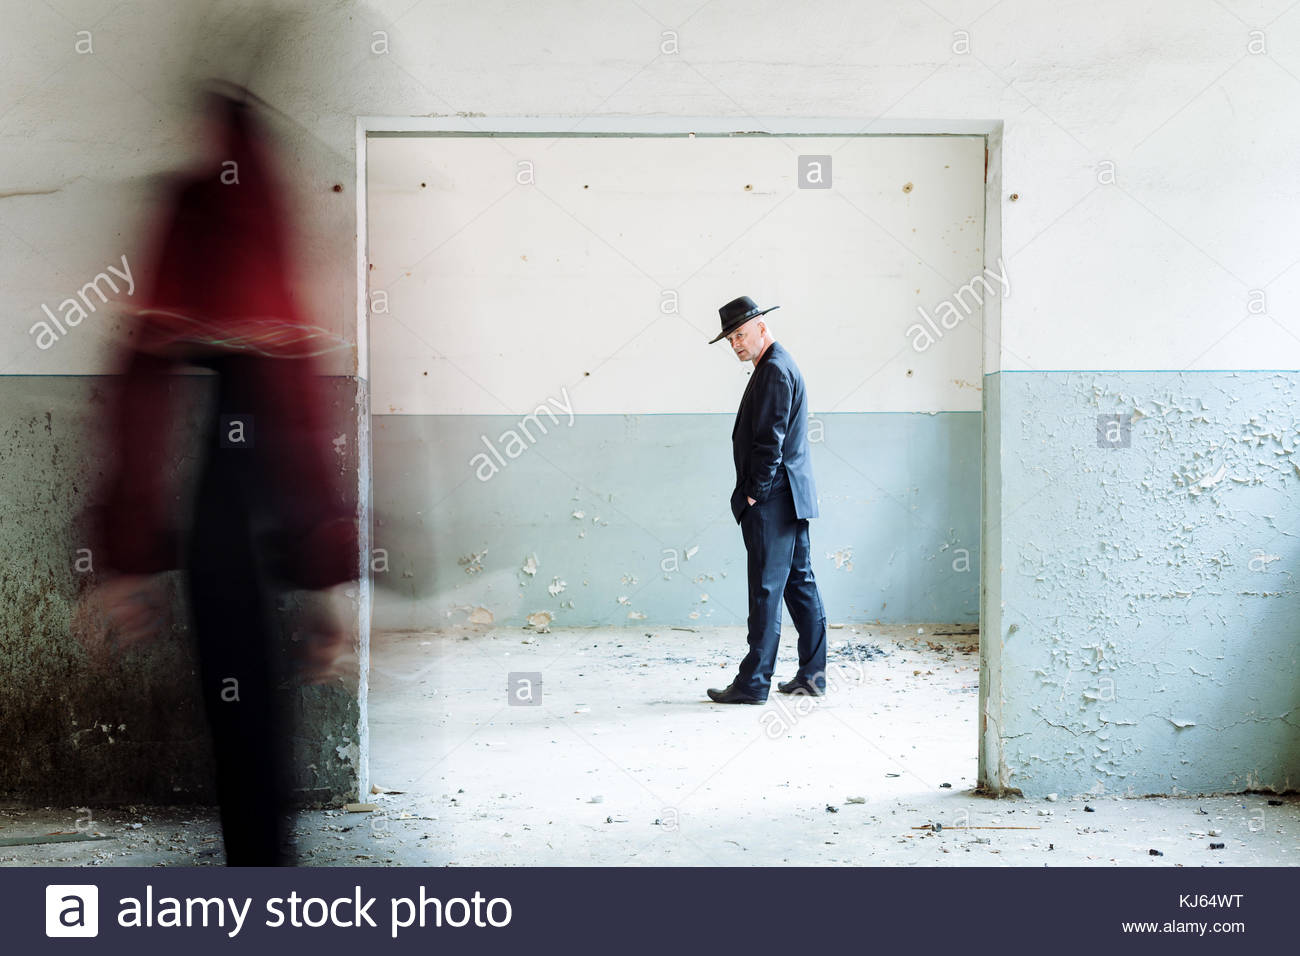 surreal man in hat blurred figure Stock Photo